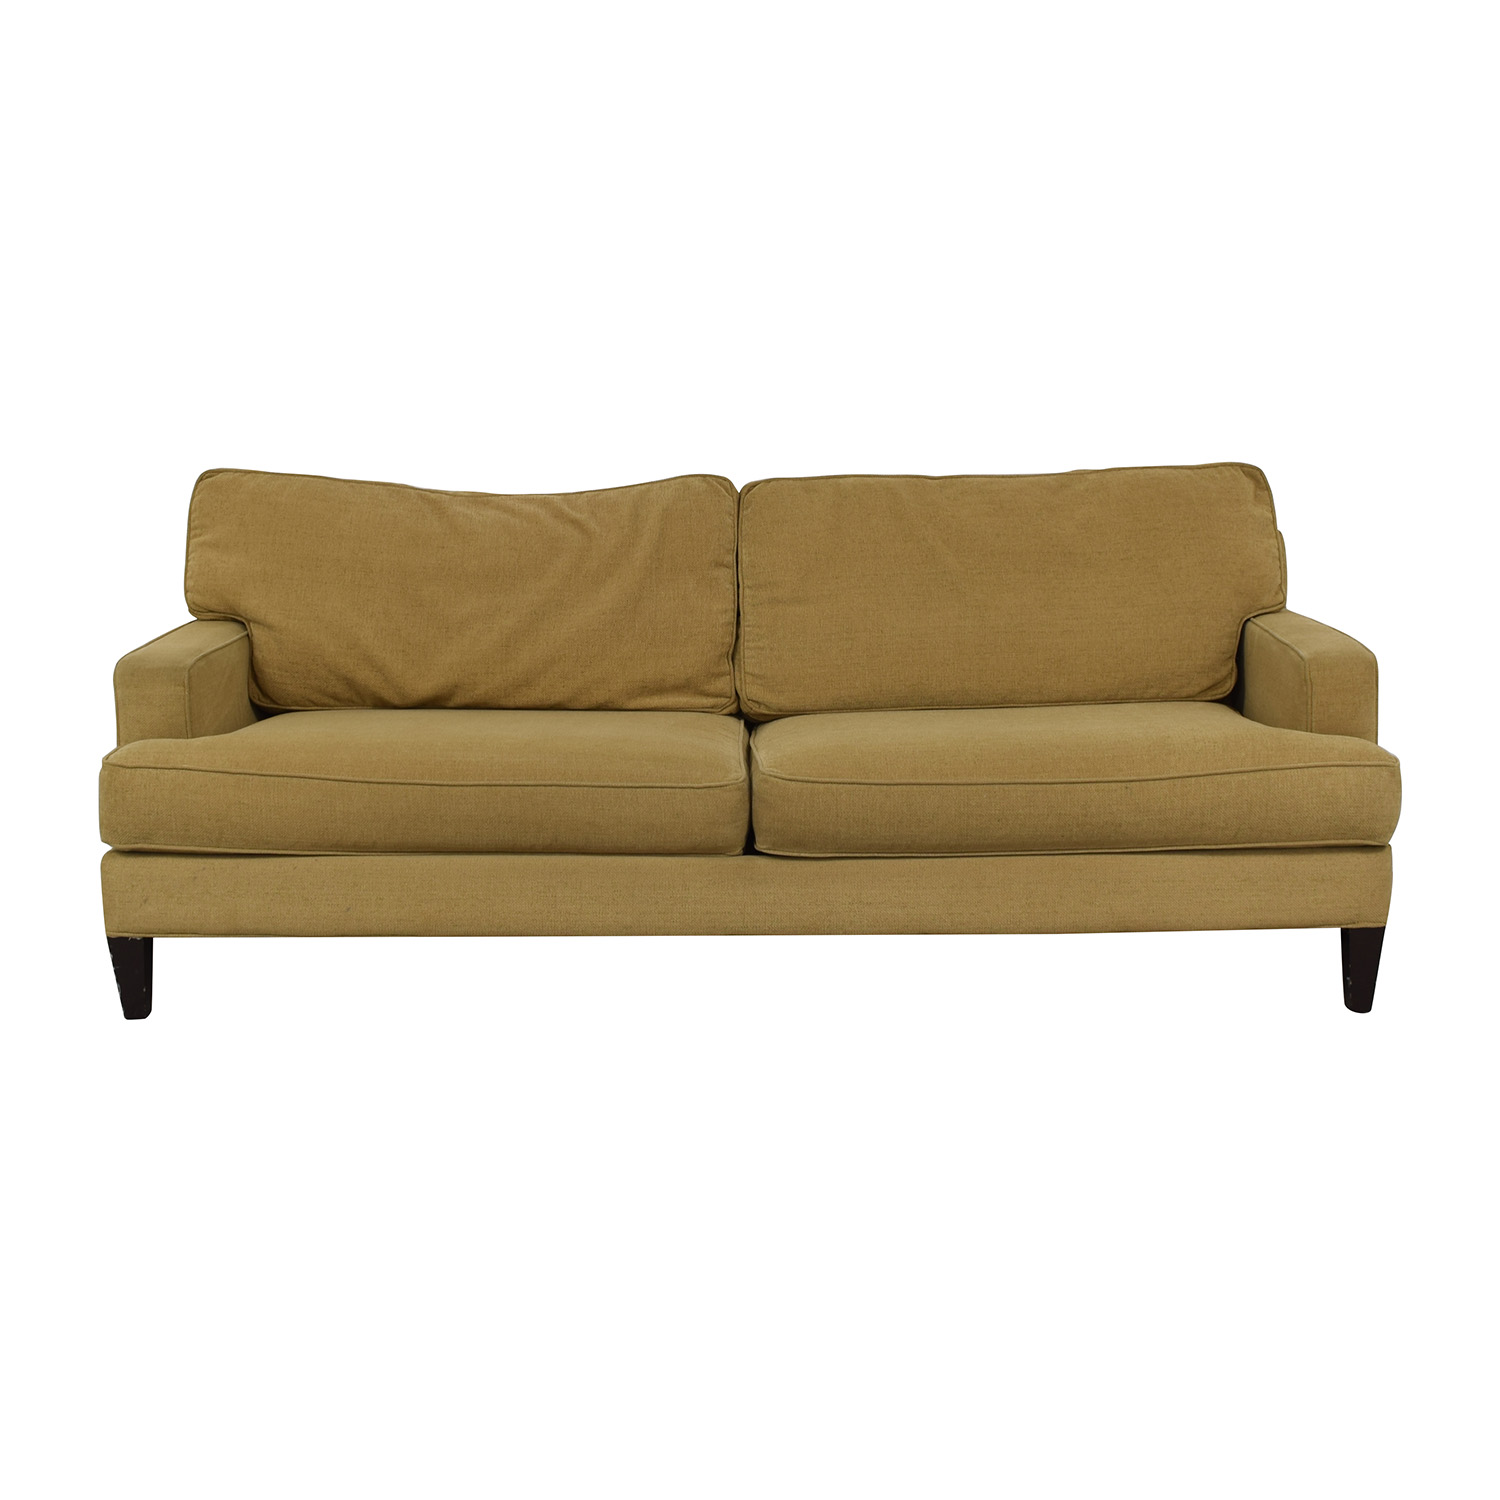 Pottery Barn Pottery Barn Tan Two Cushion Couch Classic Sofas